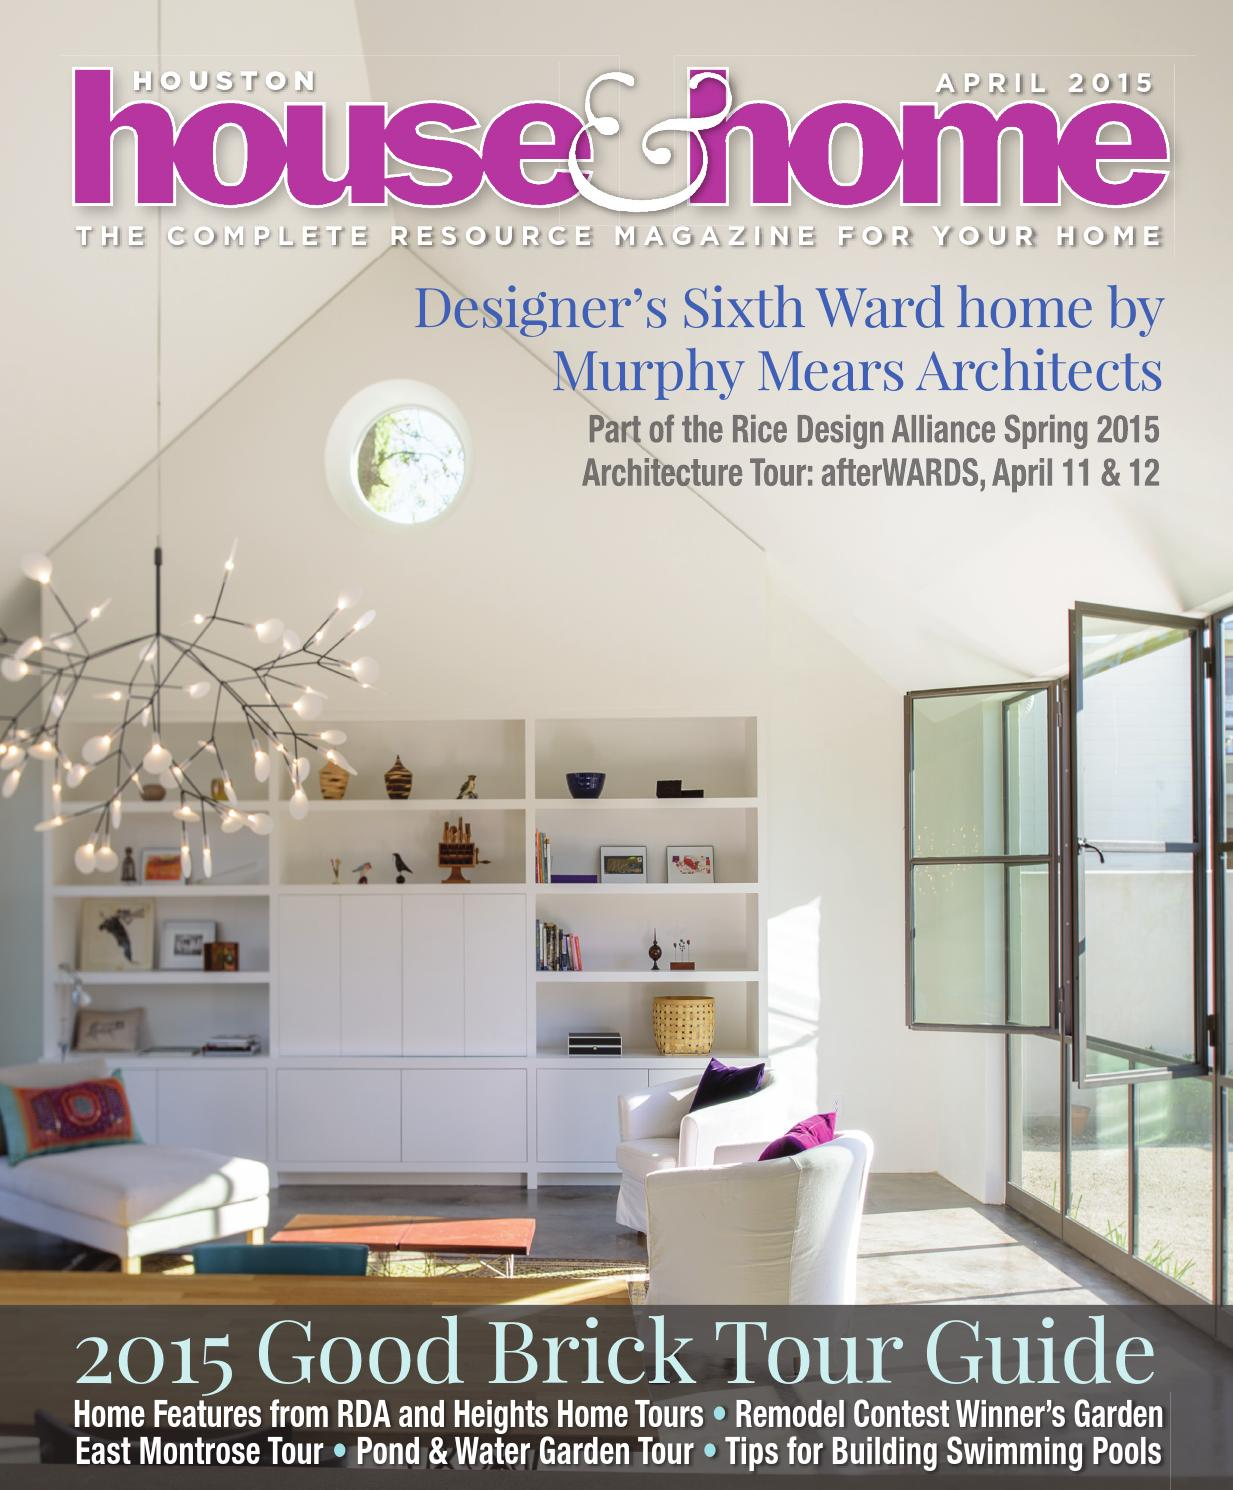 0415 houhousehome vir by houston house home magazine issuu - Houston Home And Garden Magazine